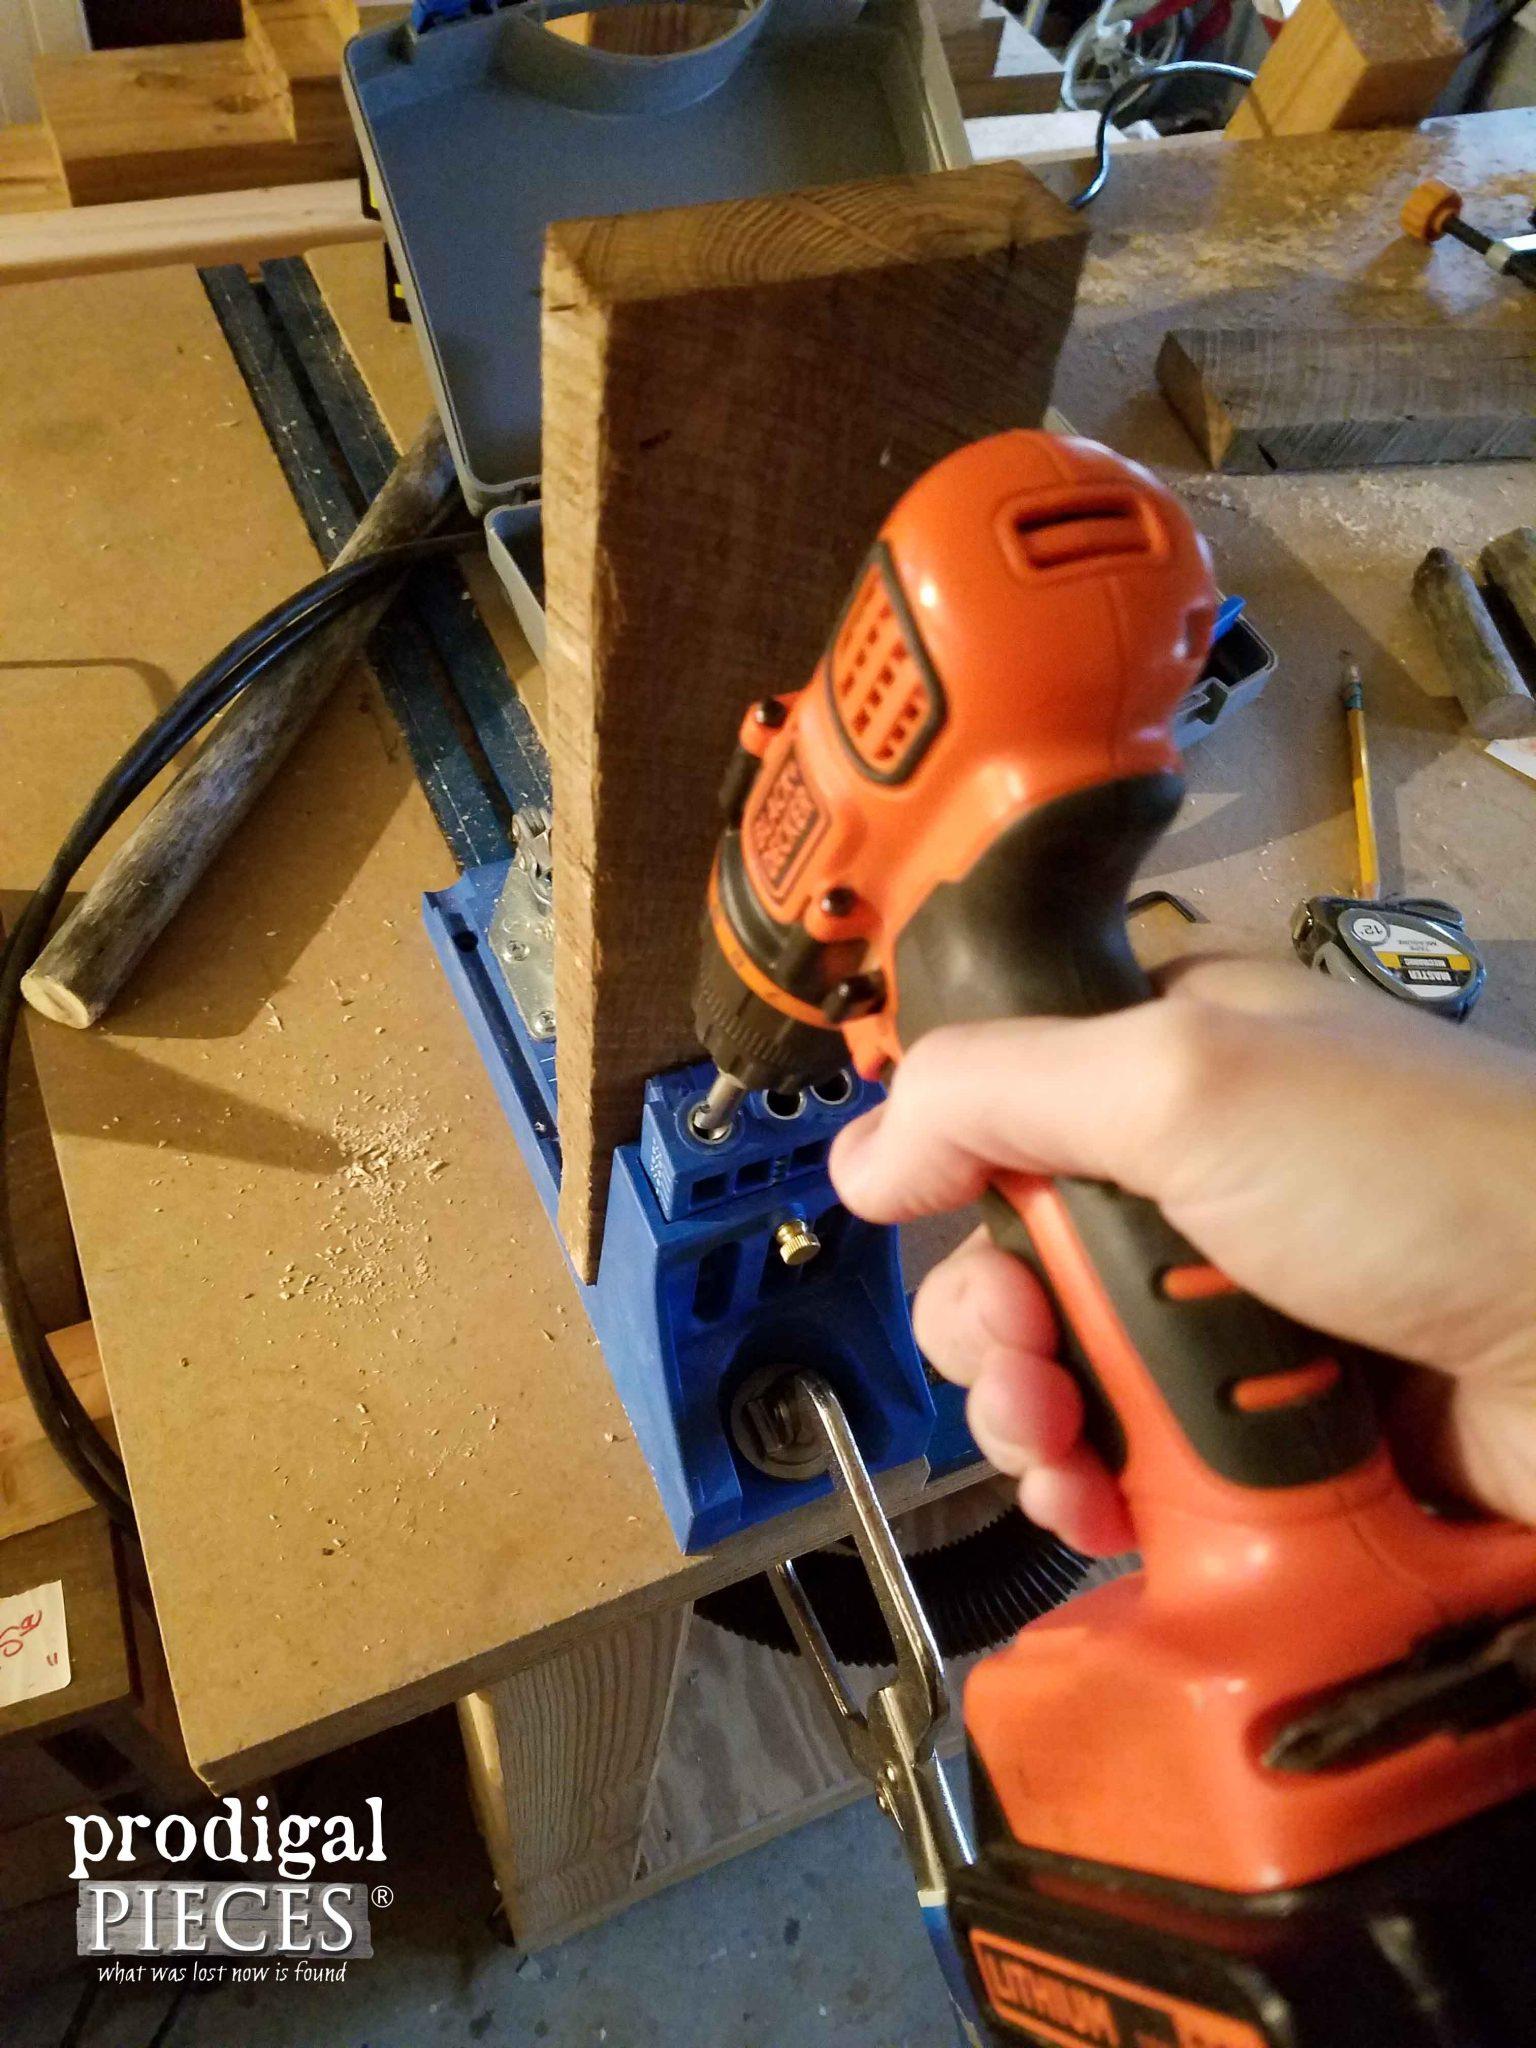 Using Kreg Jig to Make Antique Clamp Chair | Prodigal Pieces | prodigalpieces.com